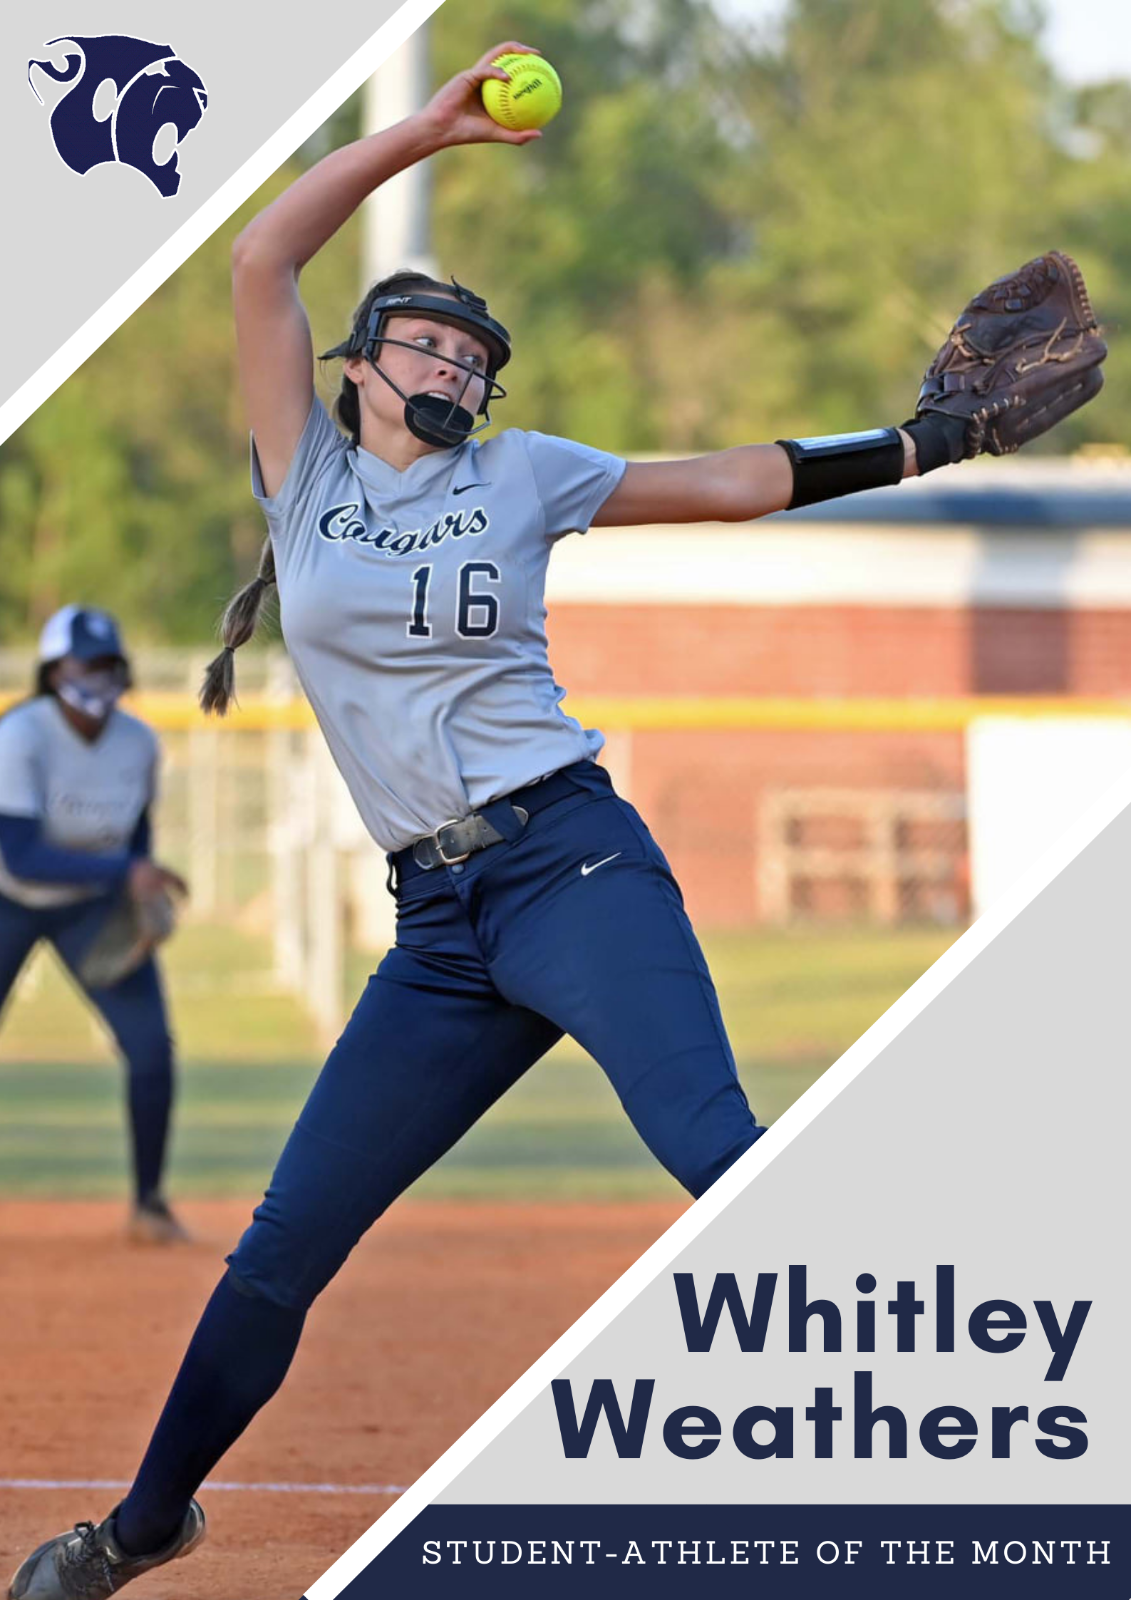 Female Student-Athlete of the Month: Whitley Weathers